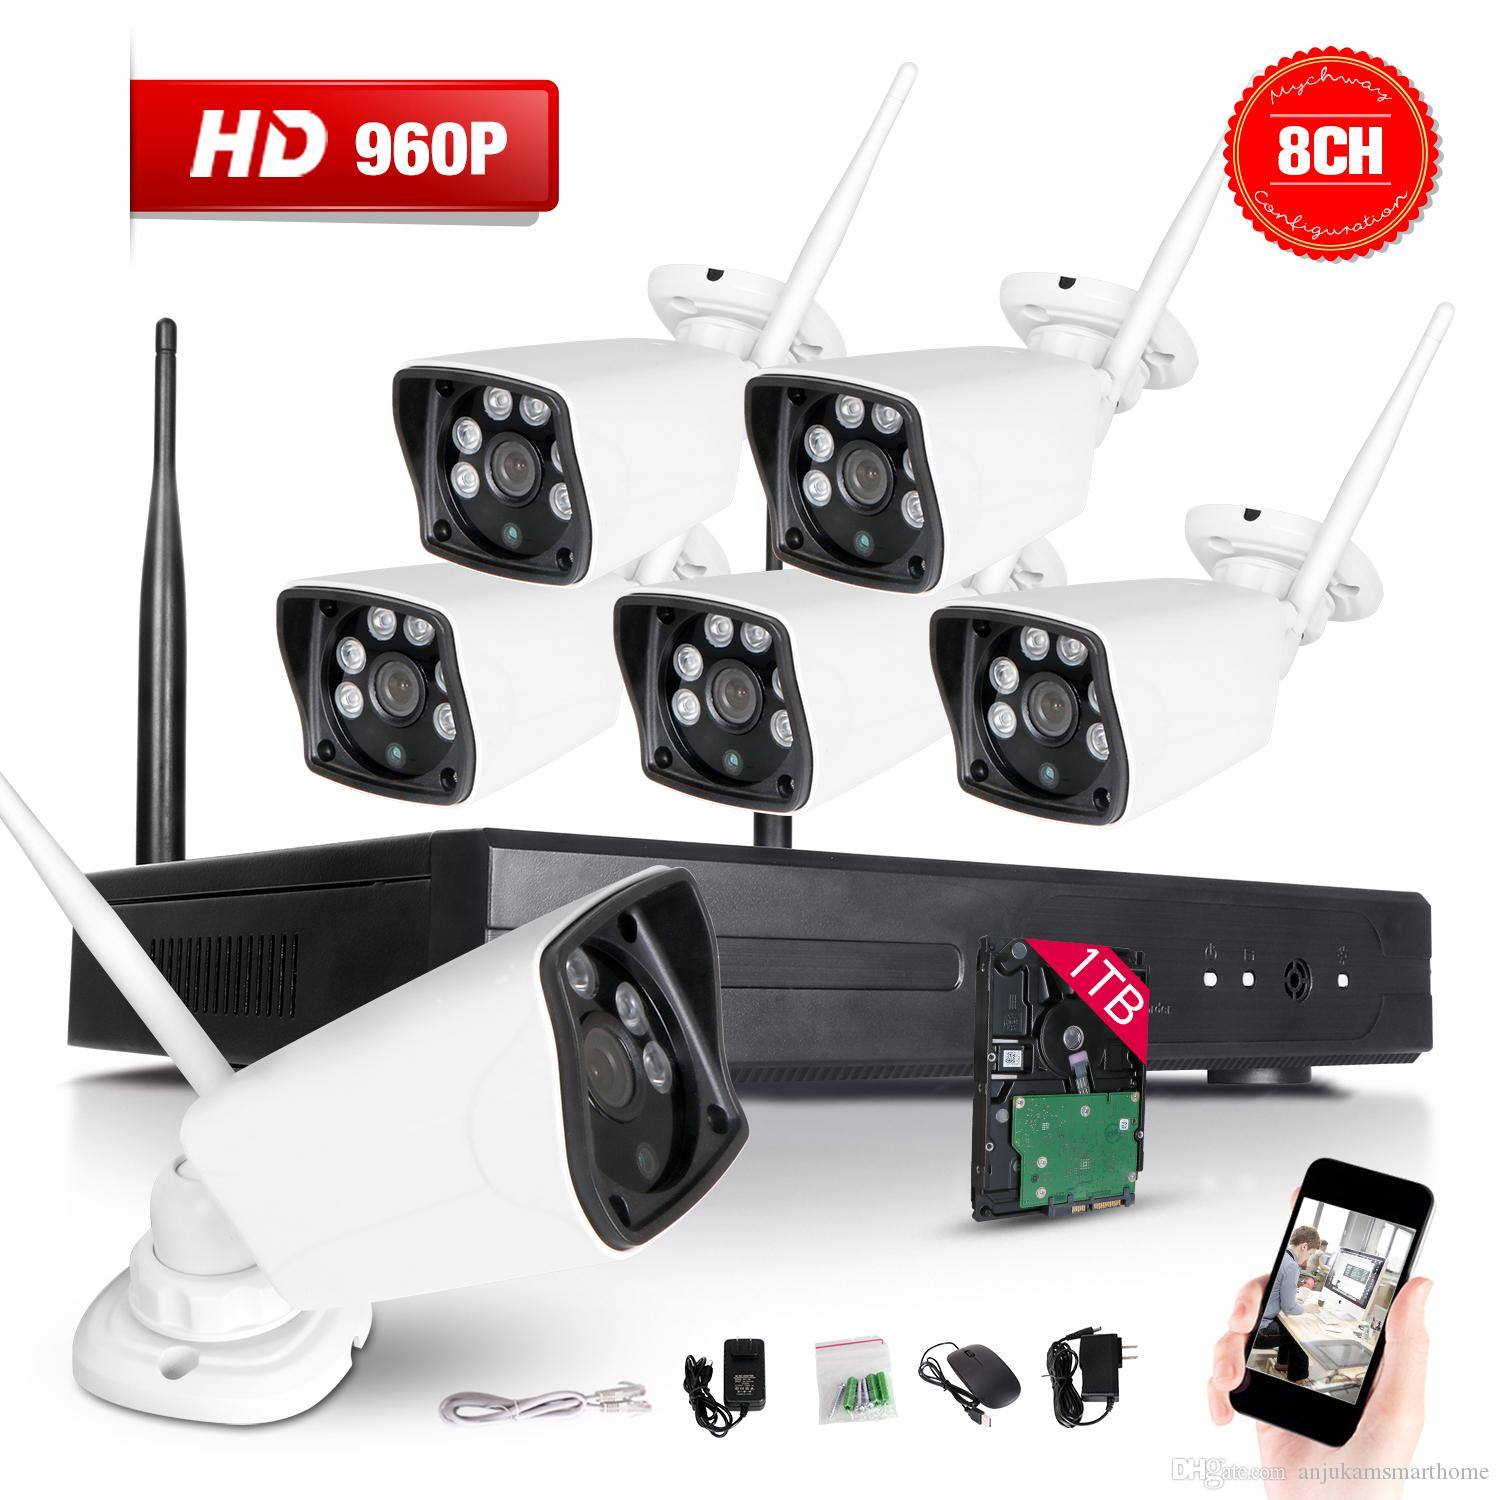 Discount 8ch 960p Nvr Wireless Cctv Security Camera System ...